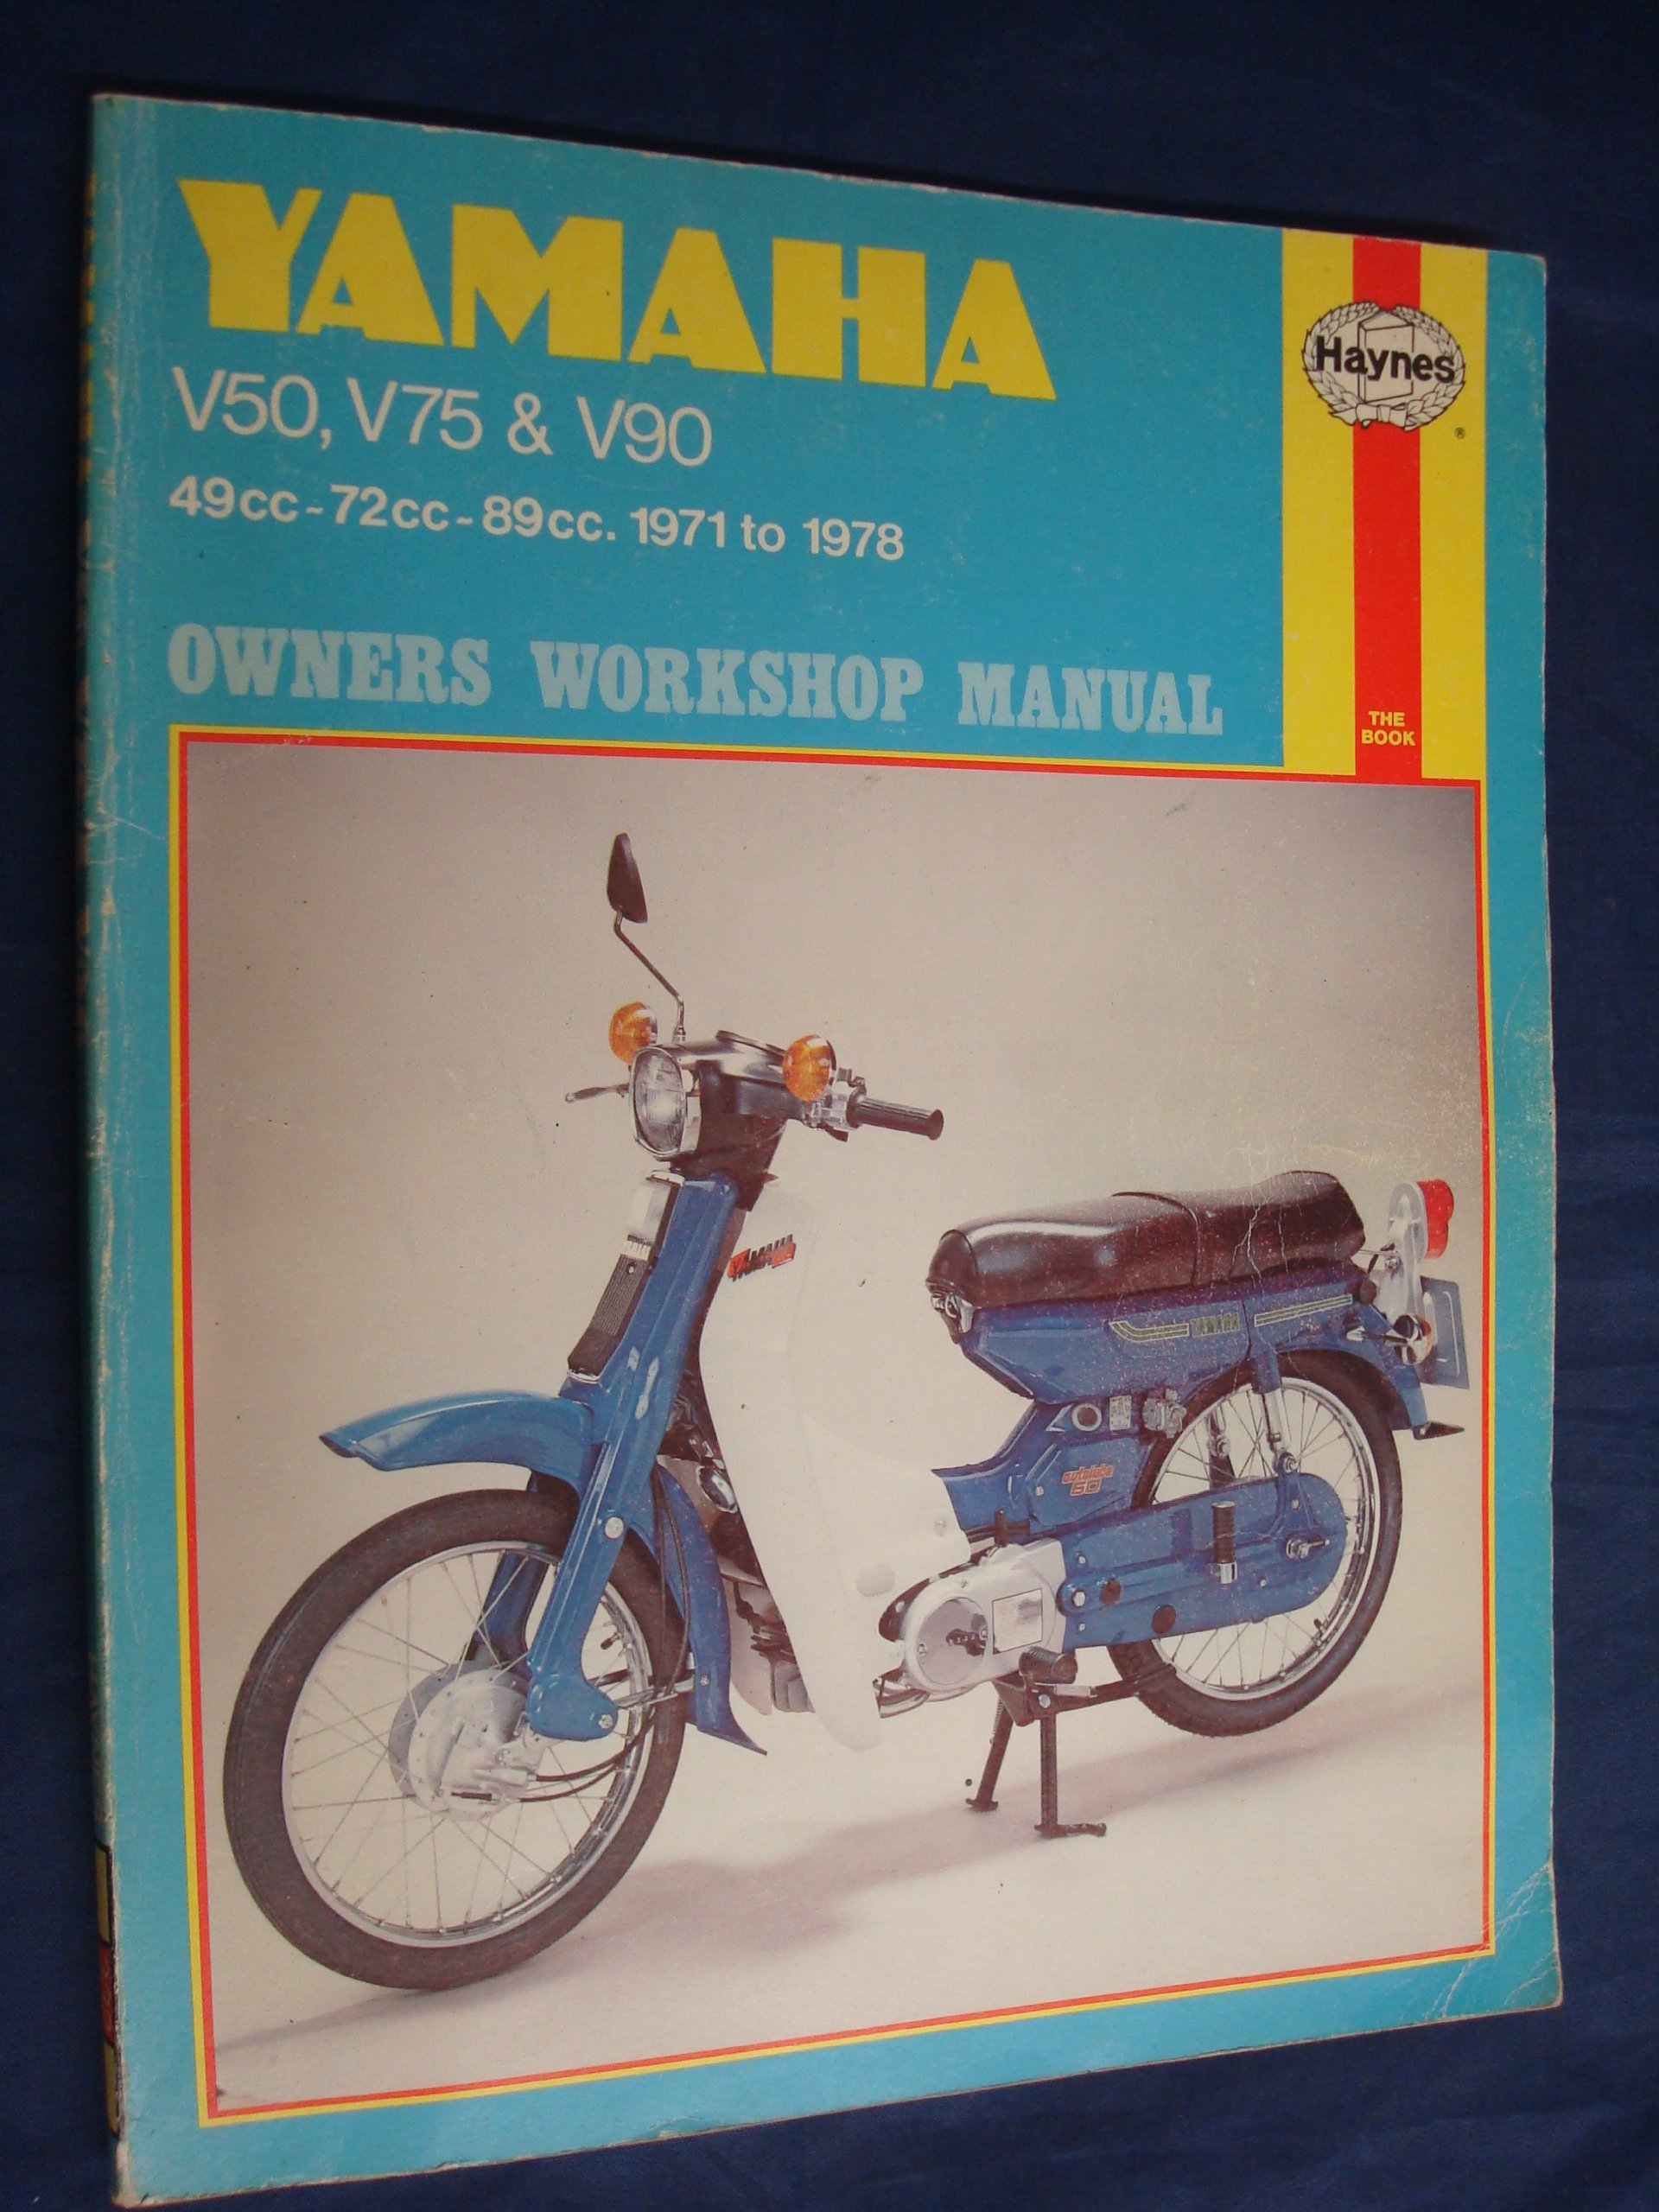 Yamaha v50 v75 and v90 owners workshop manual mervyn bleach yamaha v50 v75 and v90 owners workshop manual mervyn bleach 9780856963322 amazon books fandeluxe